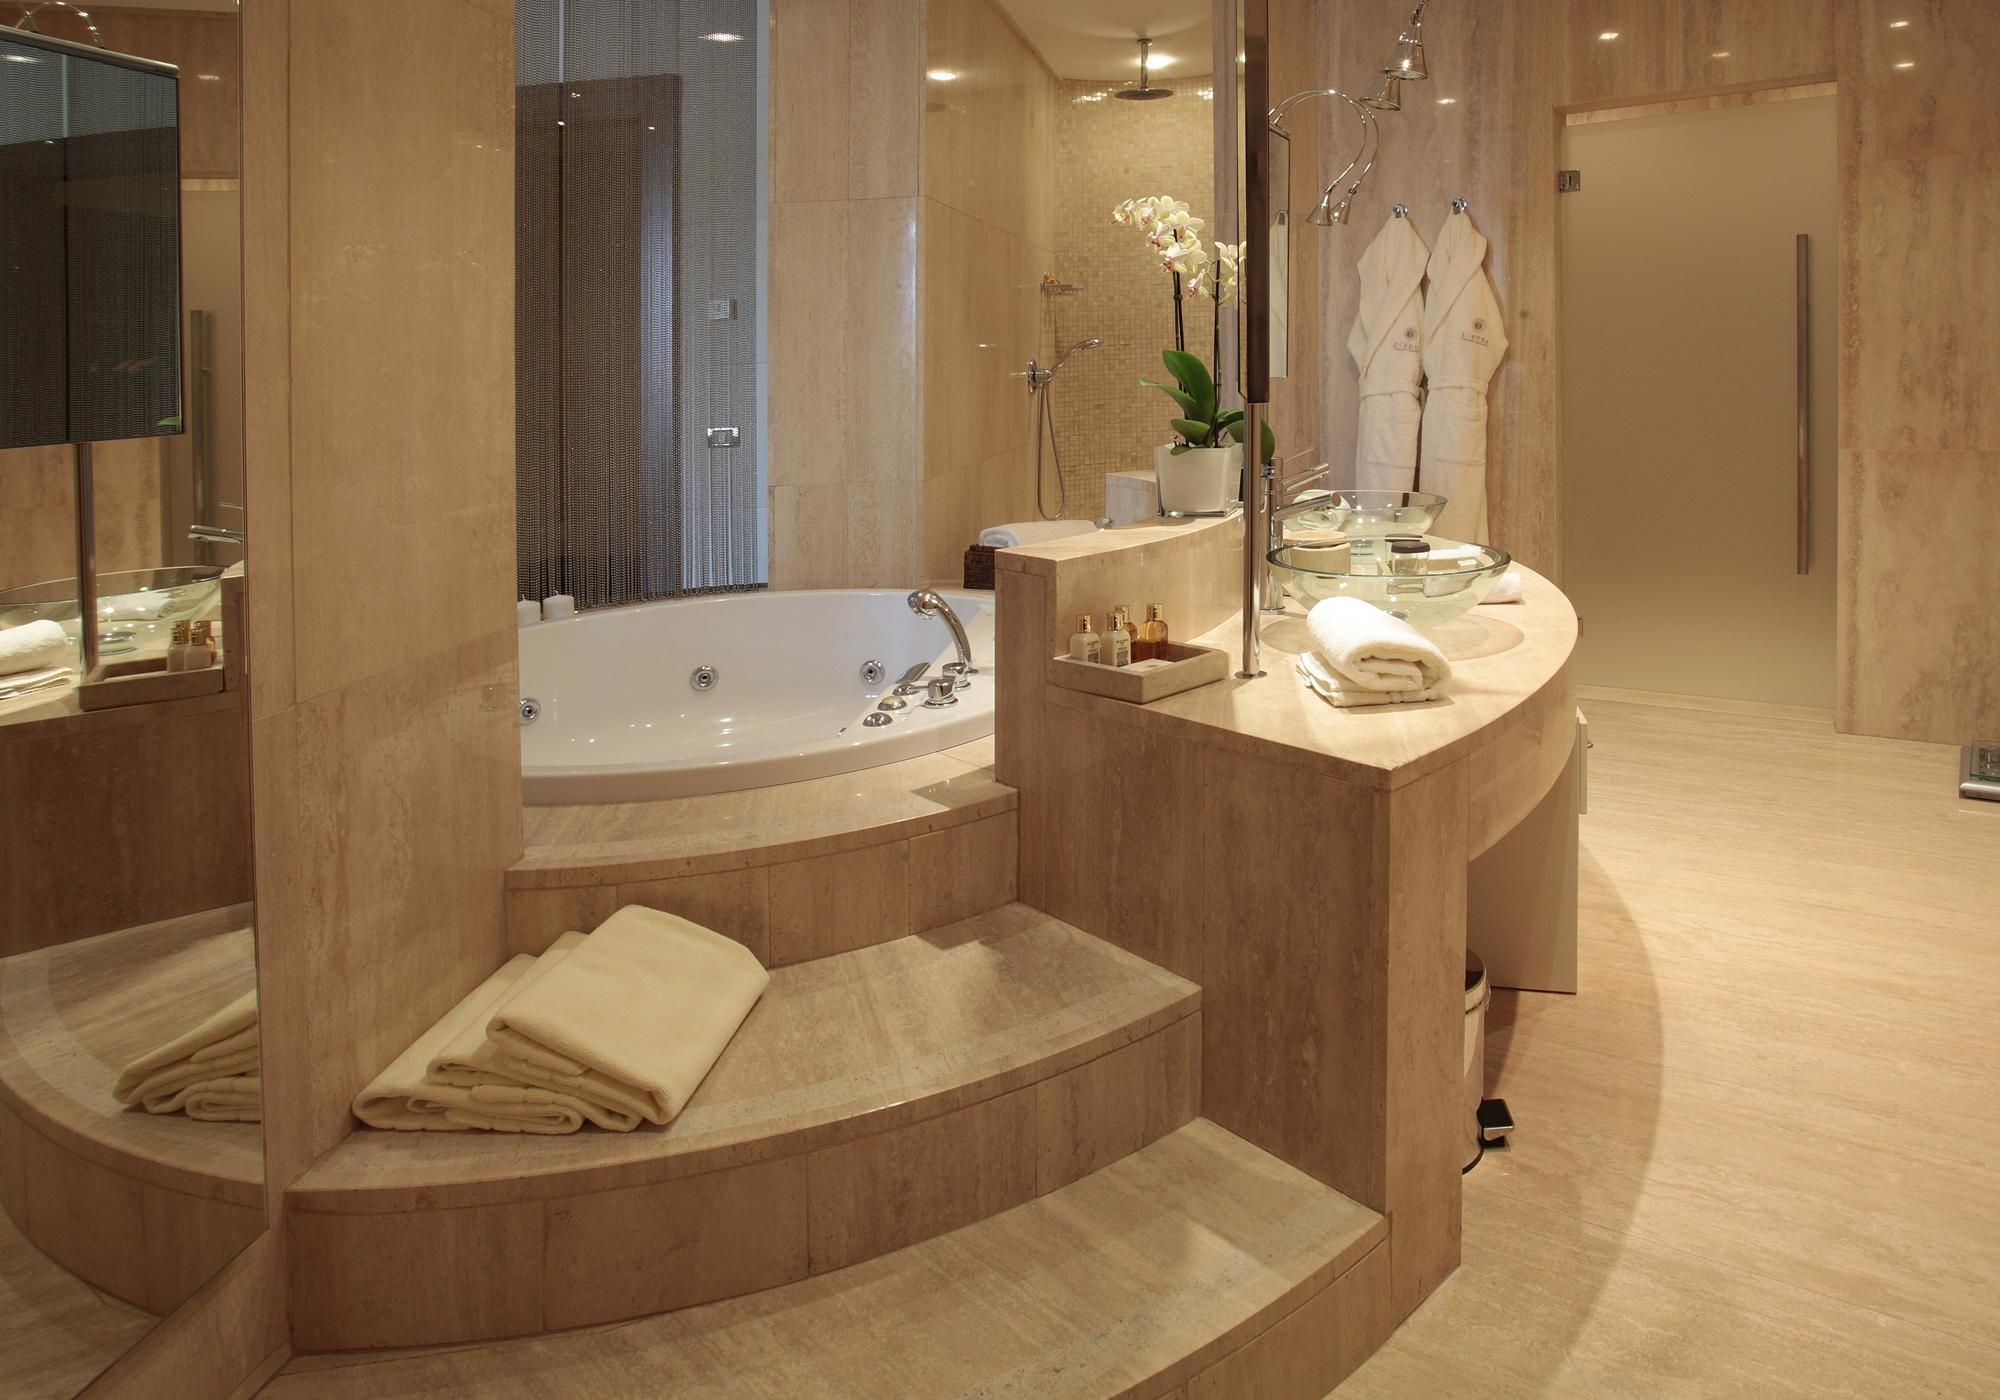 Bathroom Luxury Bathroom Style with Brown Tile Wall As Well